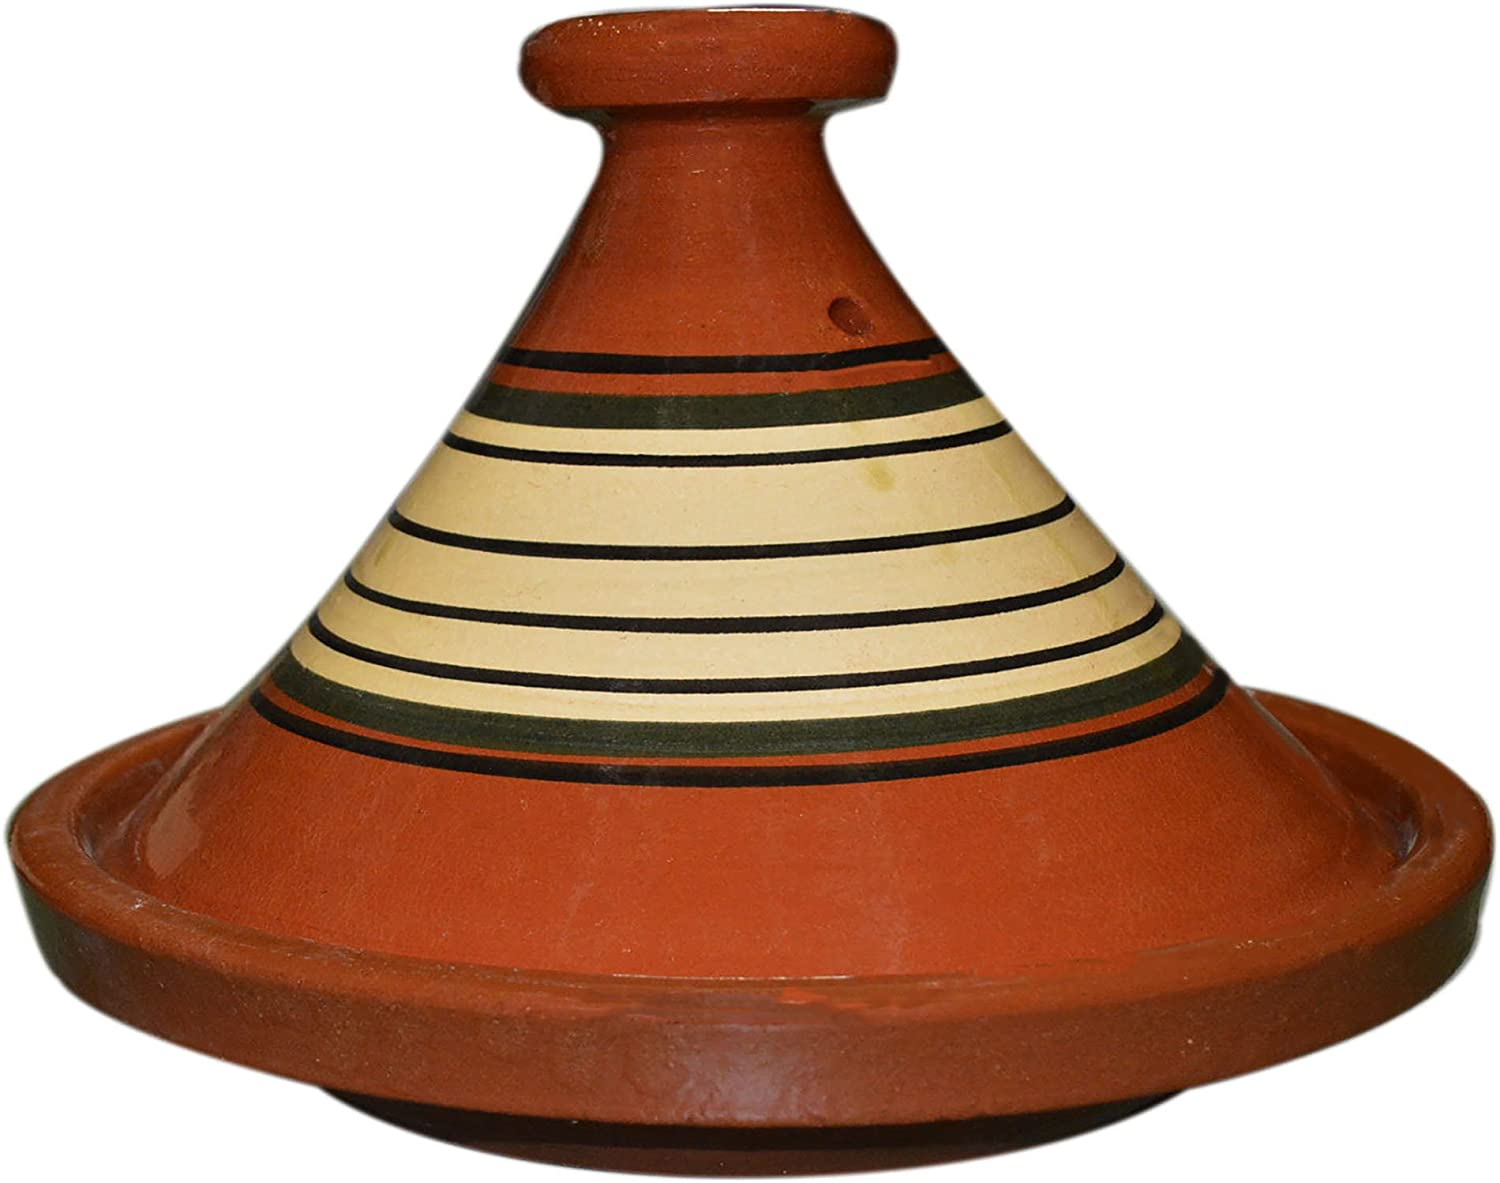 Moroccan Lead Free Cooking Tagine Glazed X-Large 13 Inches in Diameter Authentic Food